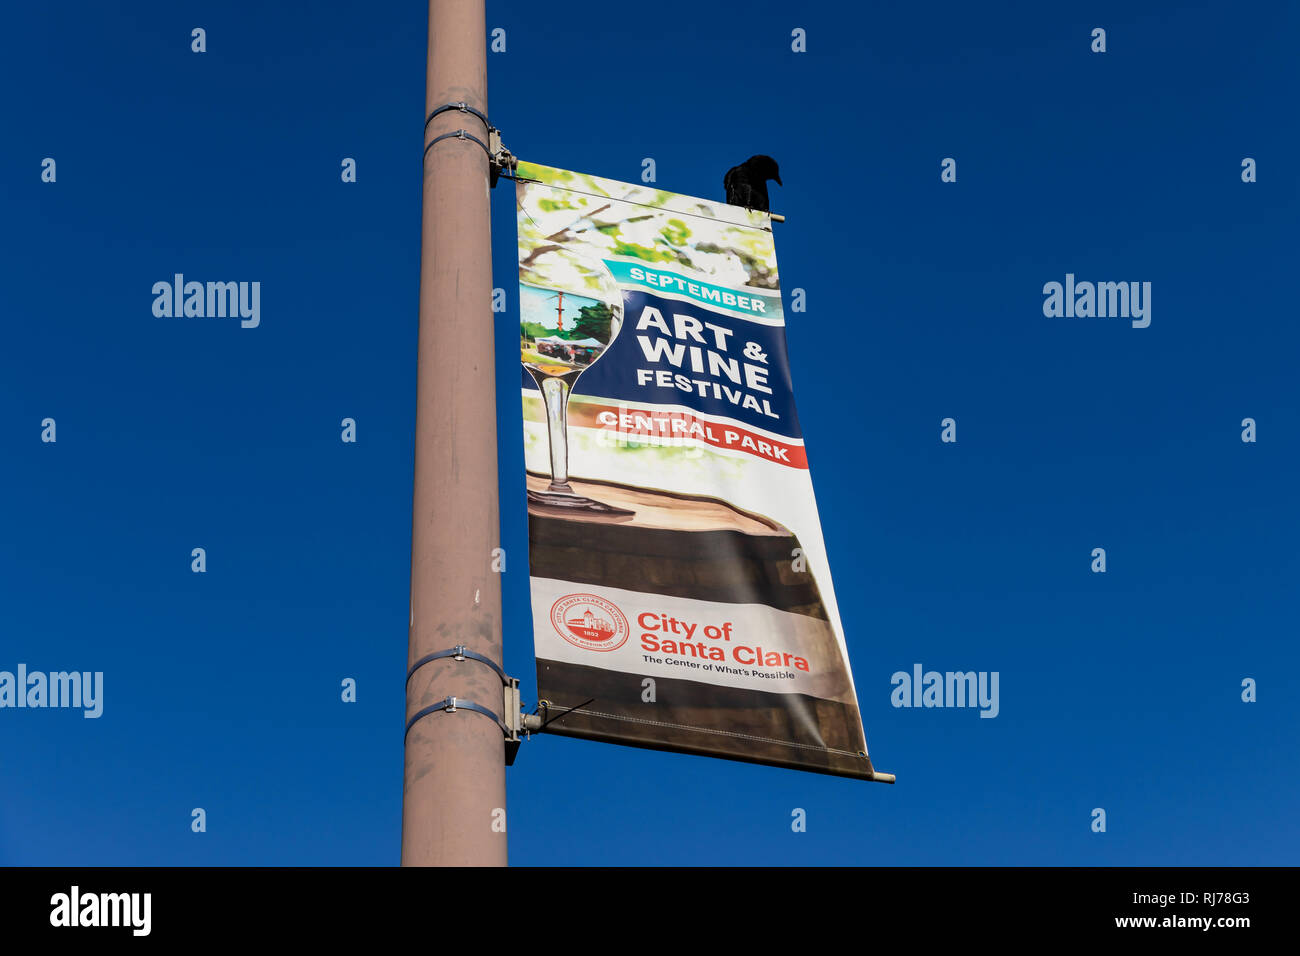 844e8c07b65 Festival Banner Stock Photos   Festival Banner Stock Images - Page 3 ...